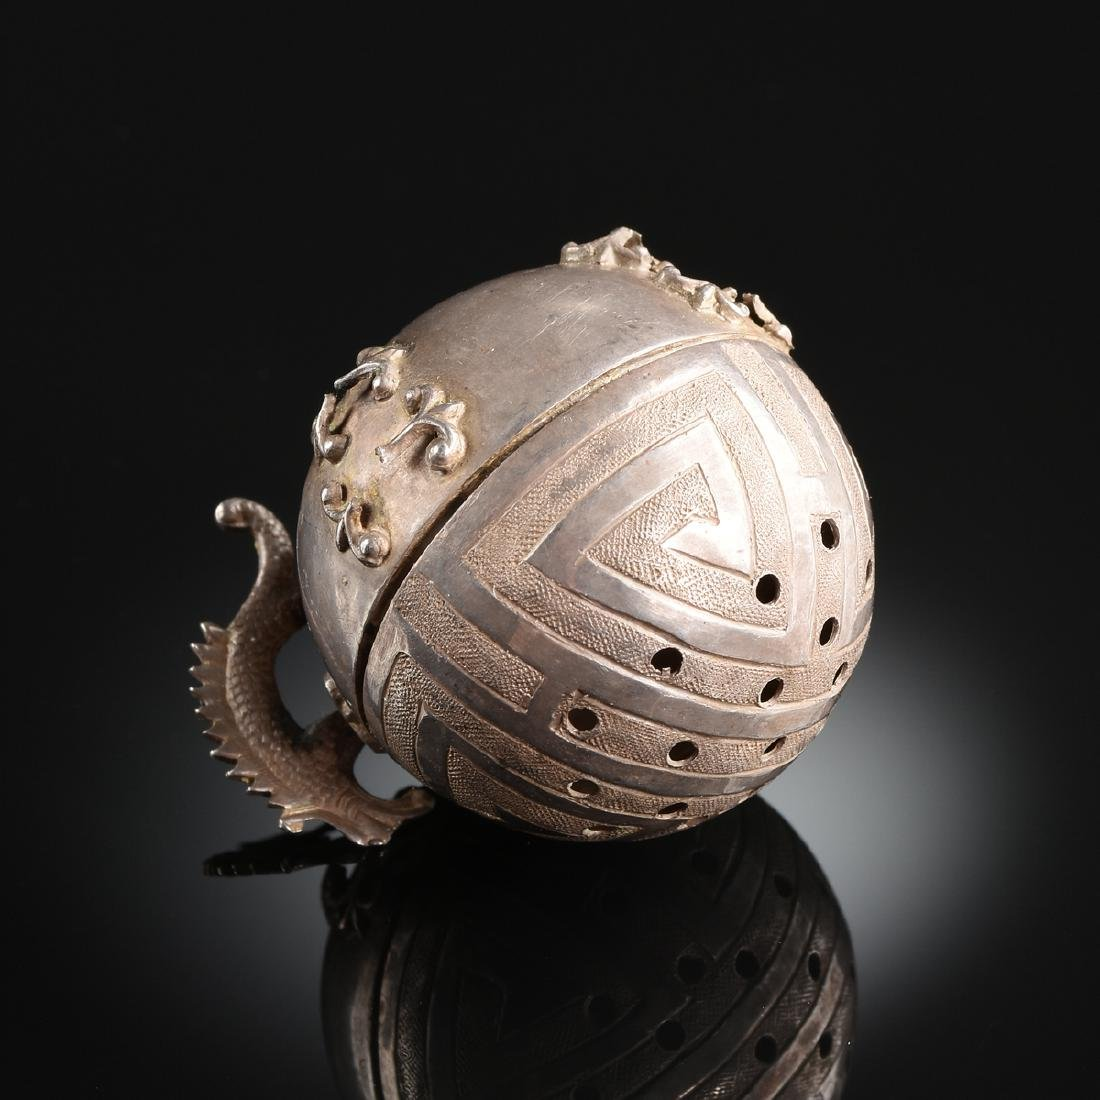 A CHINESE EXPORT SILVER DRAGON HANDLED TEA BALL, EARLY